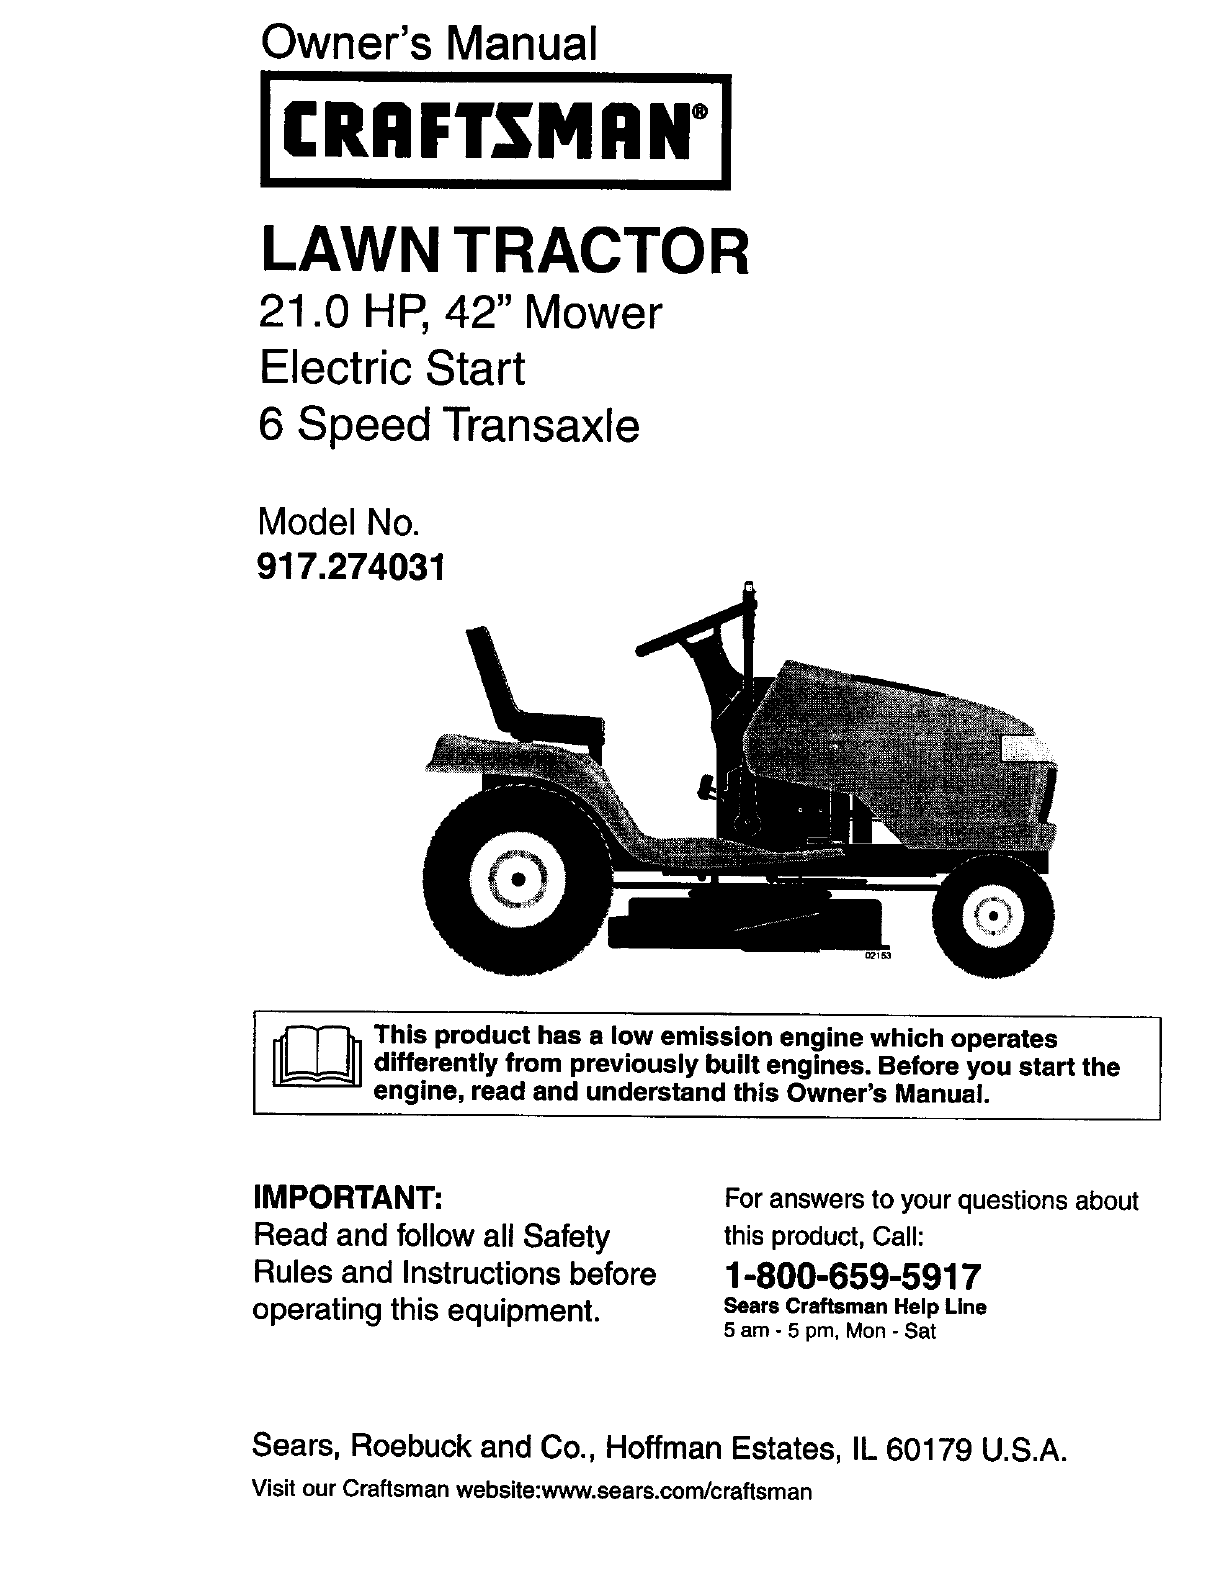 Owner's Manual. LAWN TRACTOR